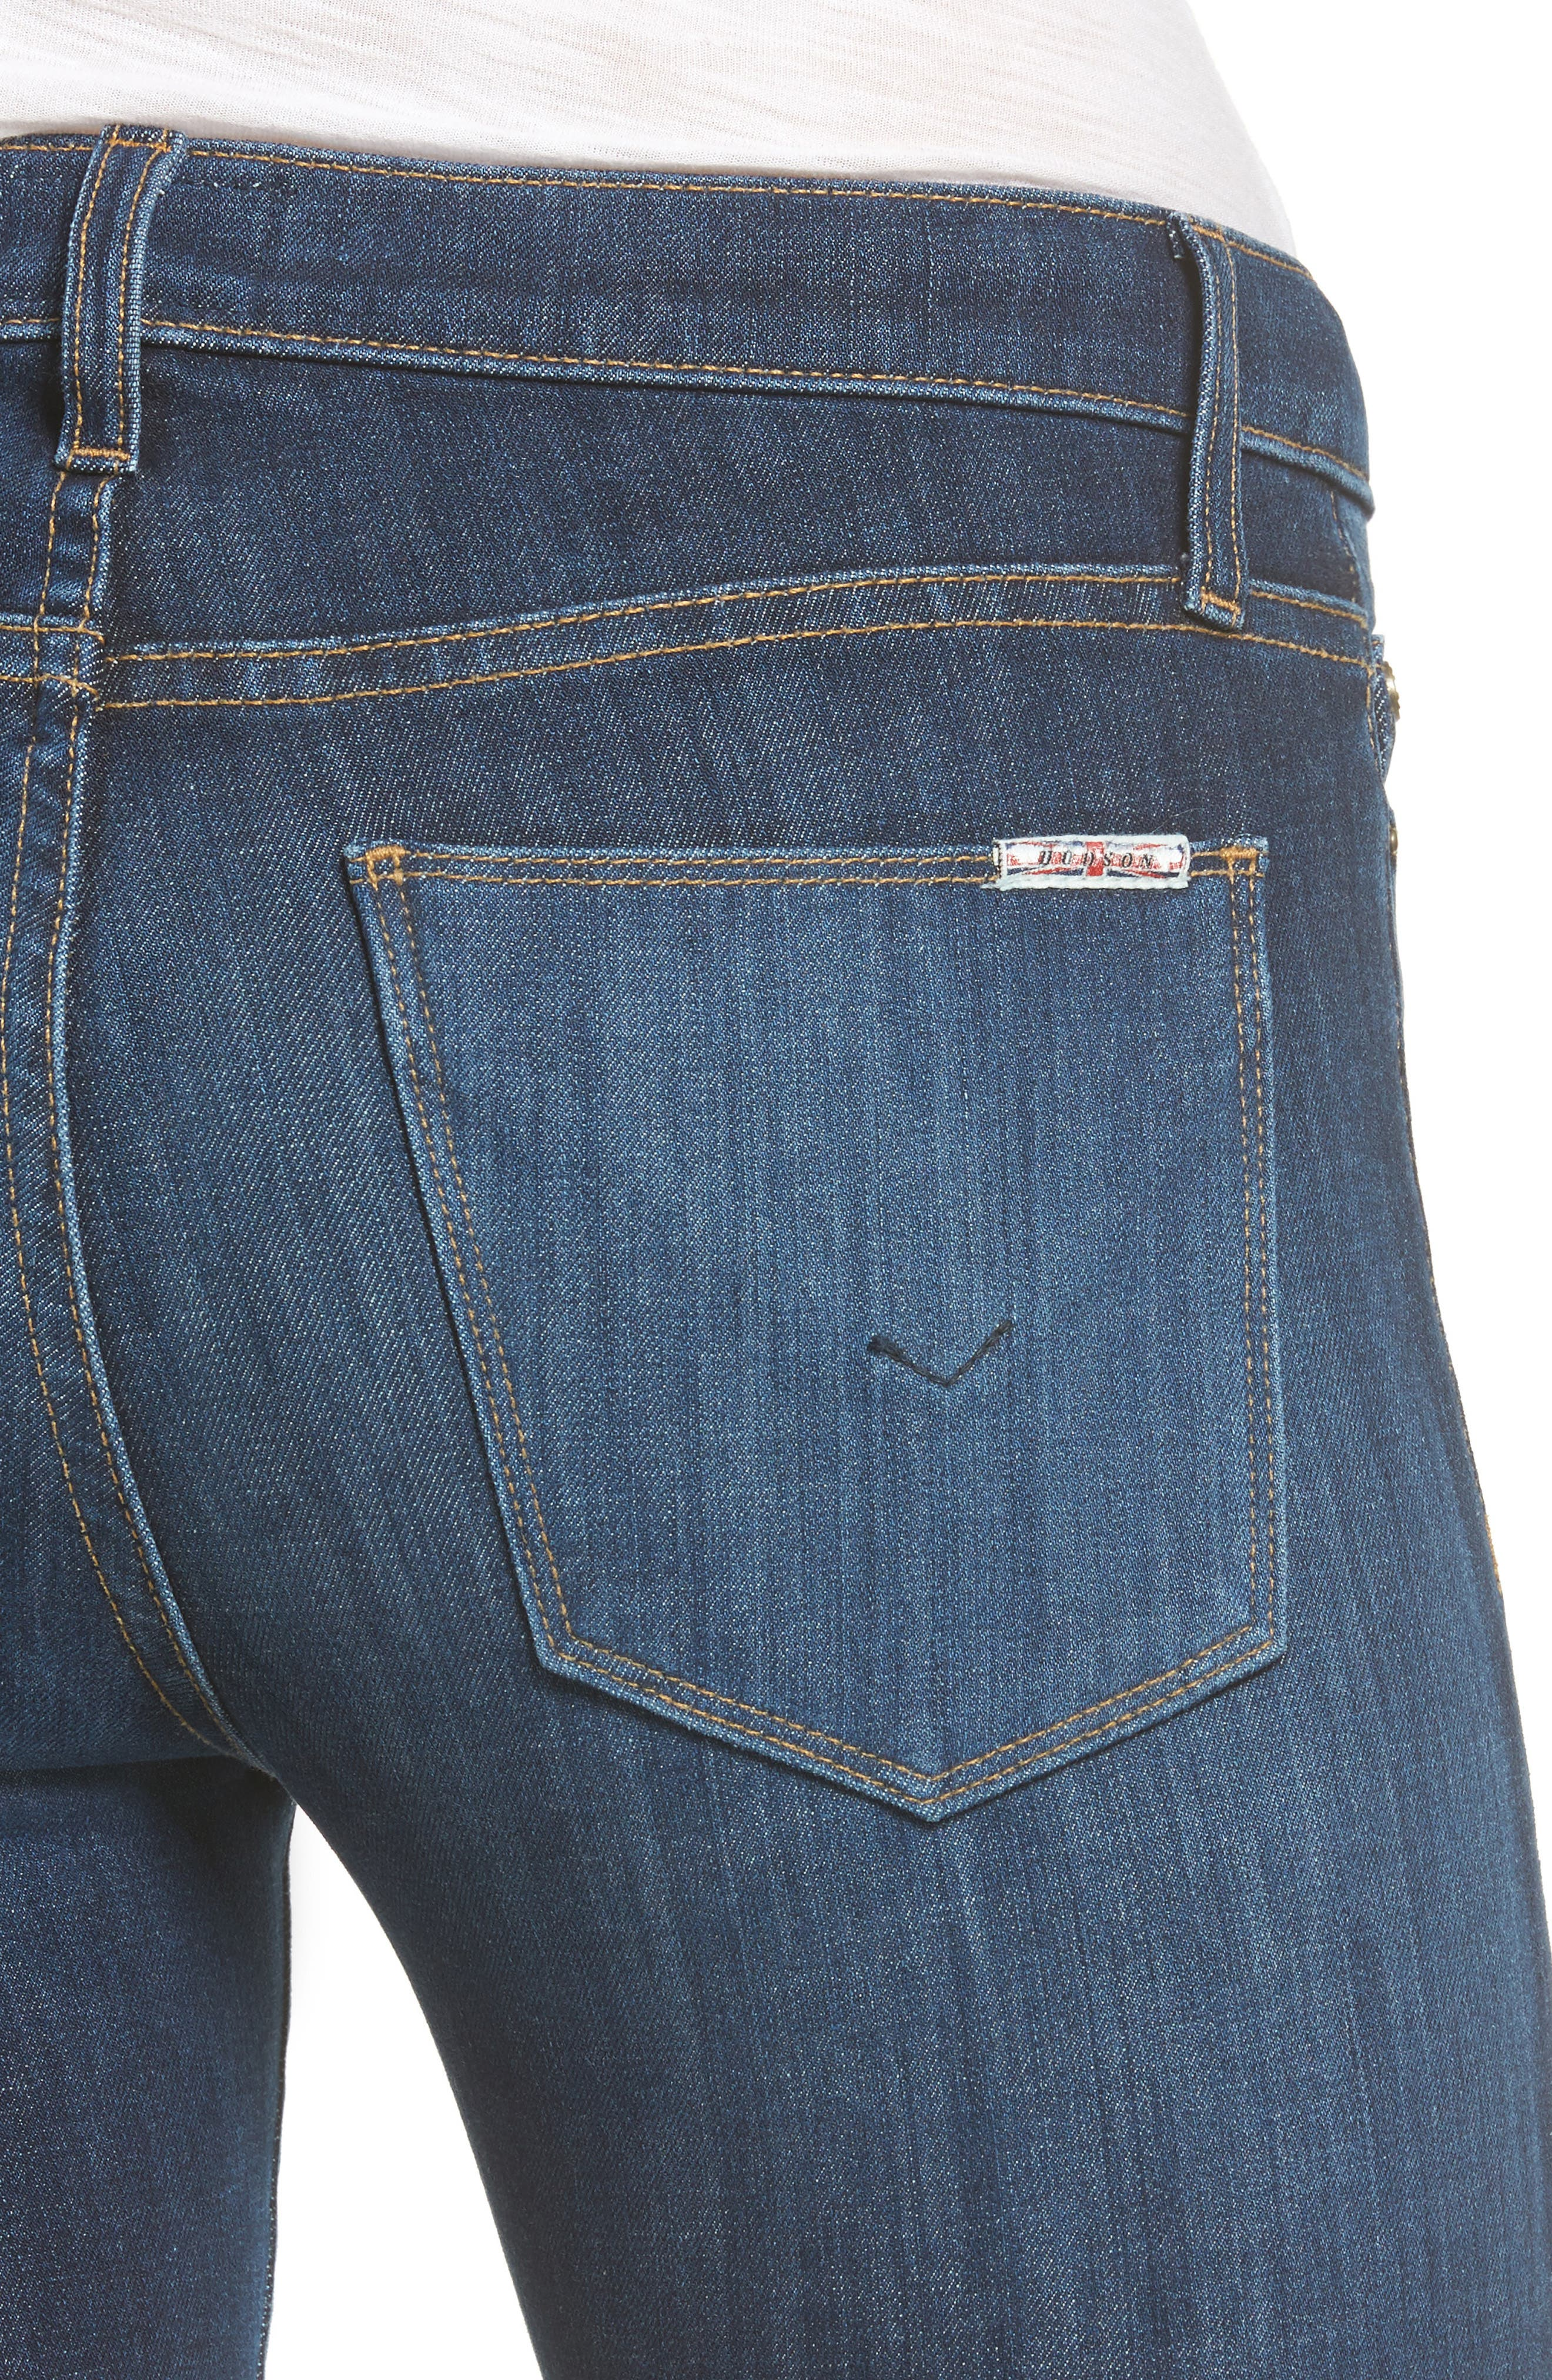 Hudson Drew Bootcut Jeans,                             Alternate thumbnail 4, color,                             Trance